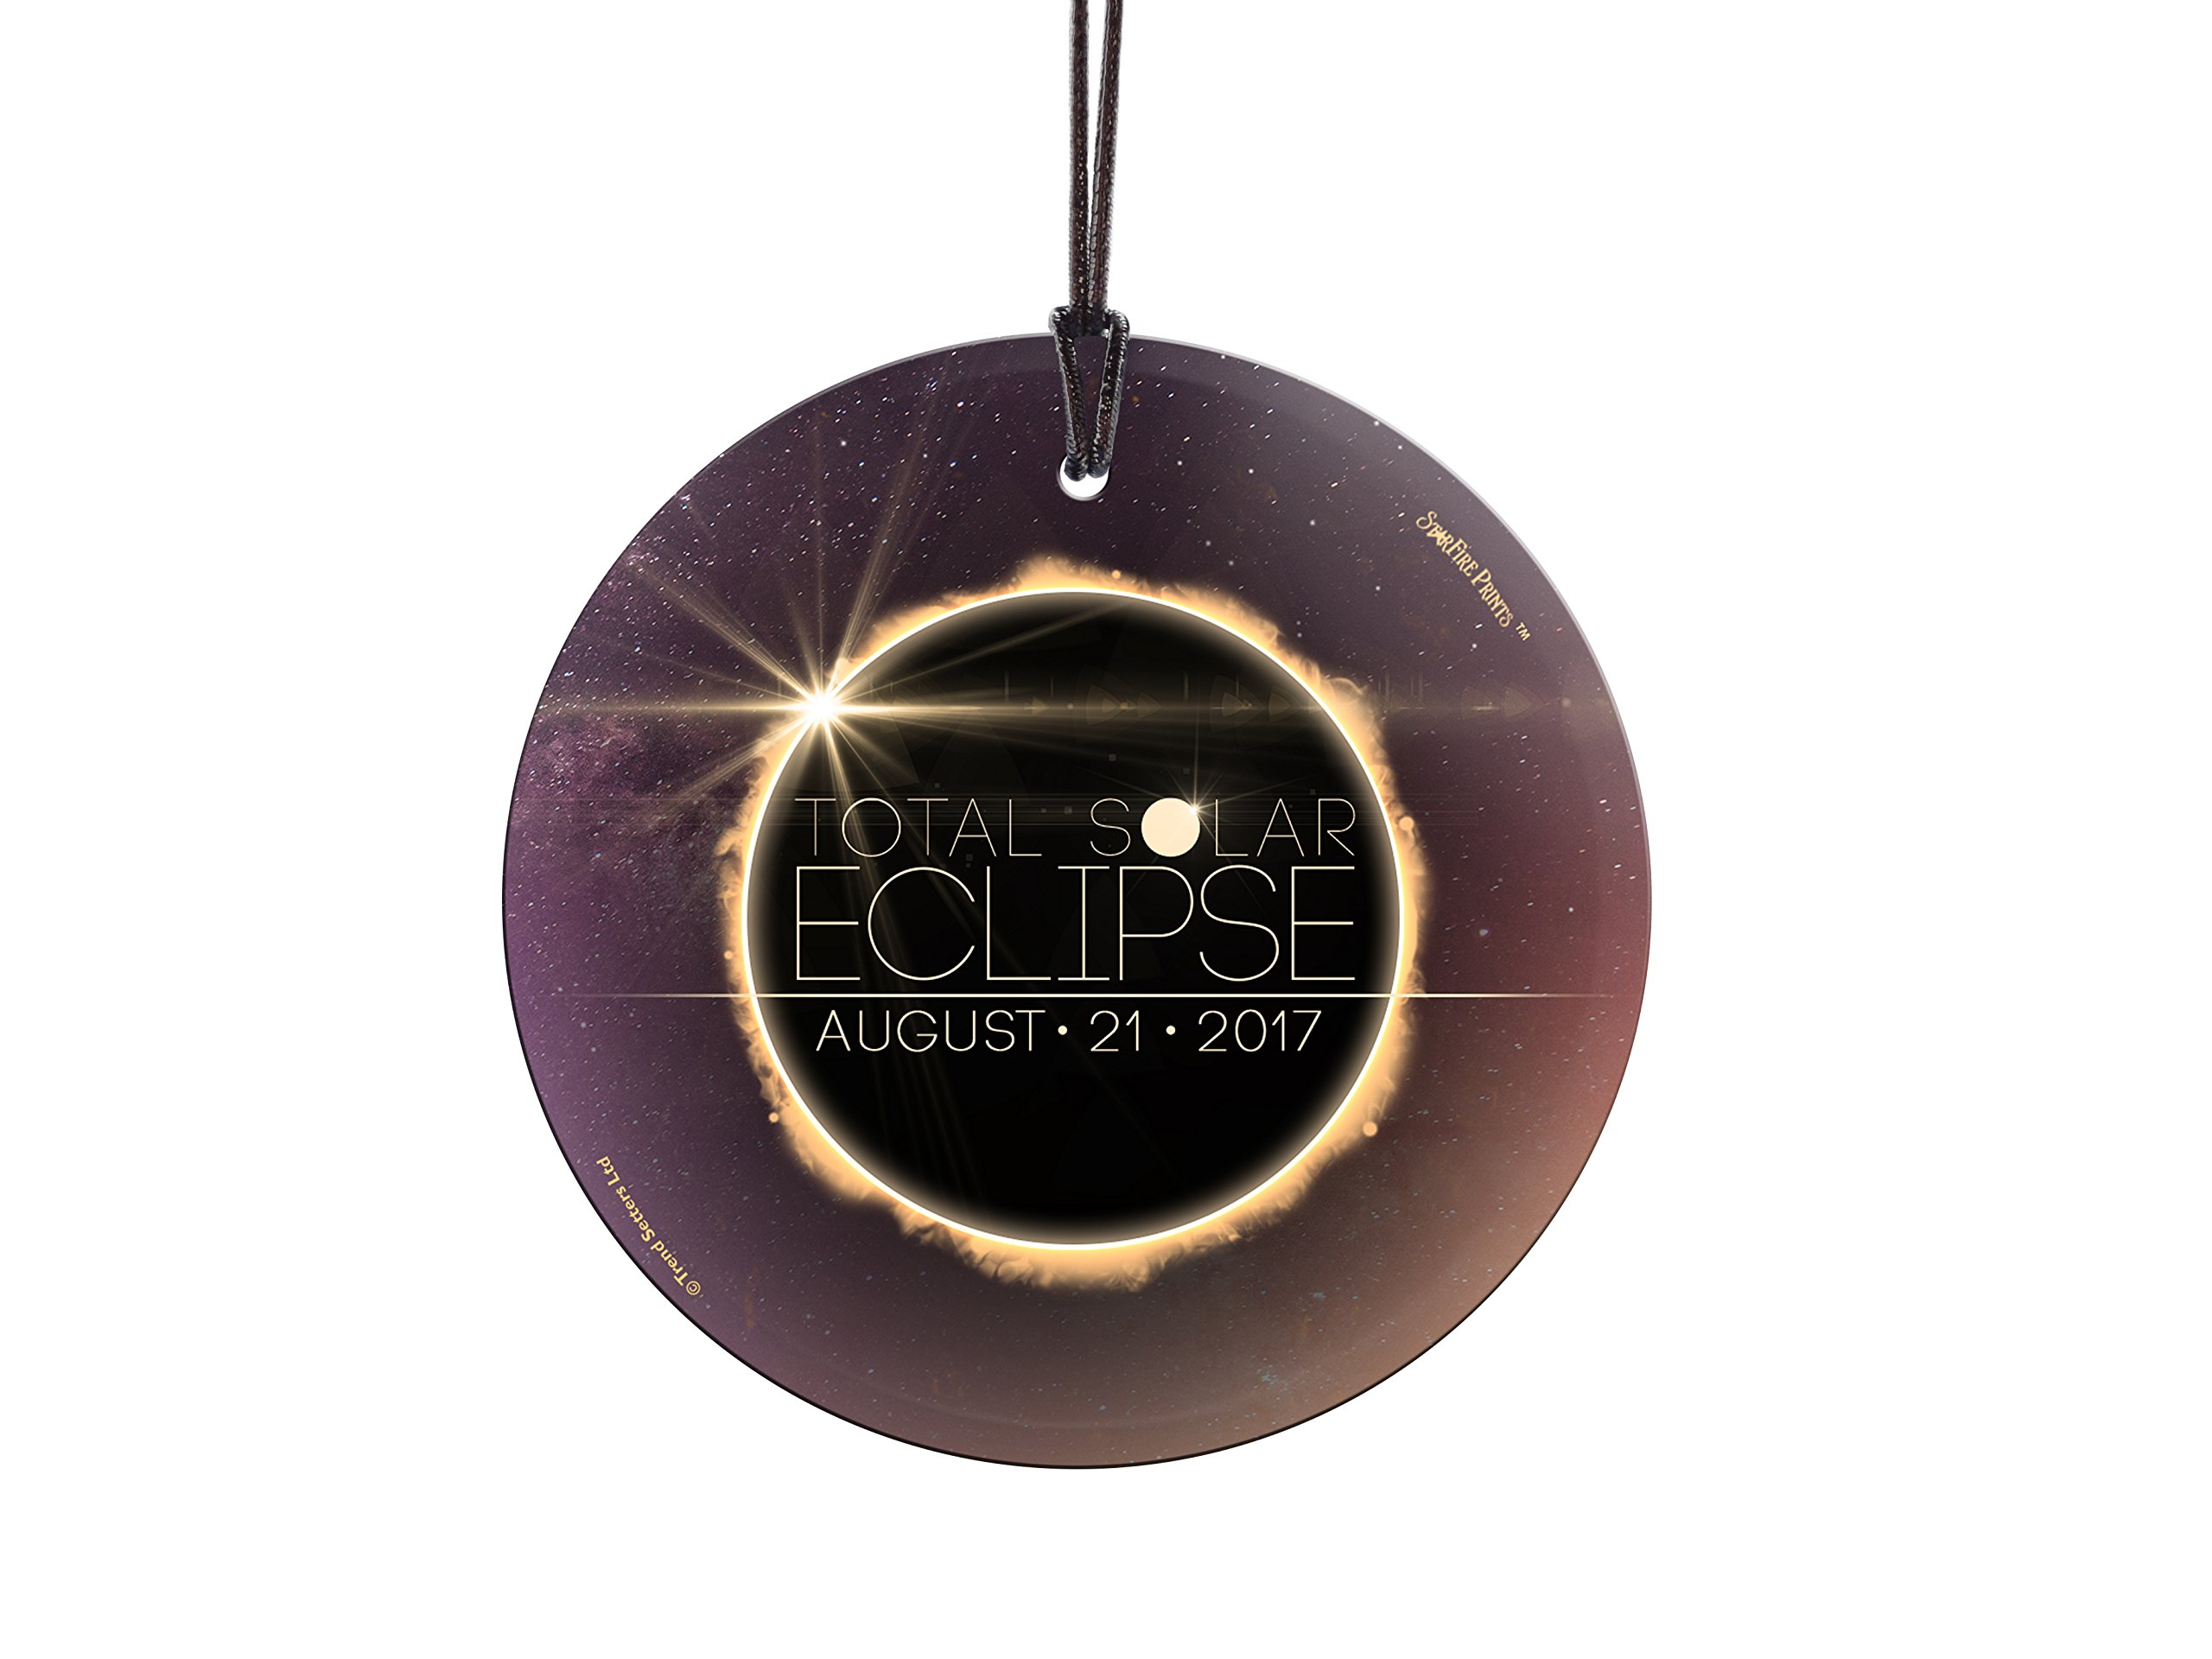 Total Solar Eclipse 2017 StarFire Prints Glass Ornament - Home and Christmas Tree Decoration